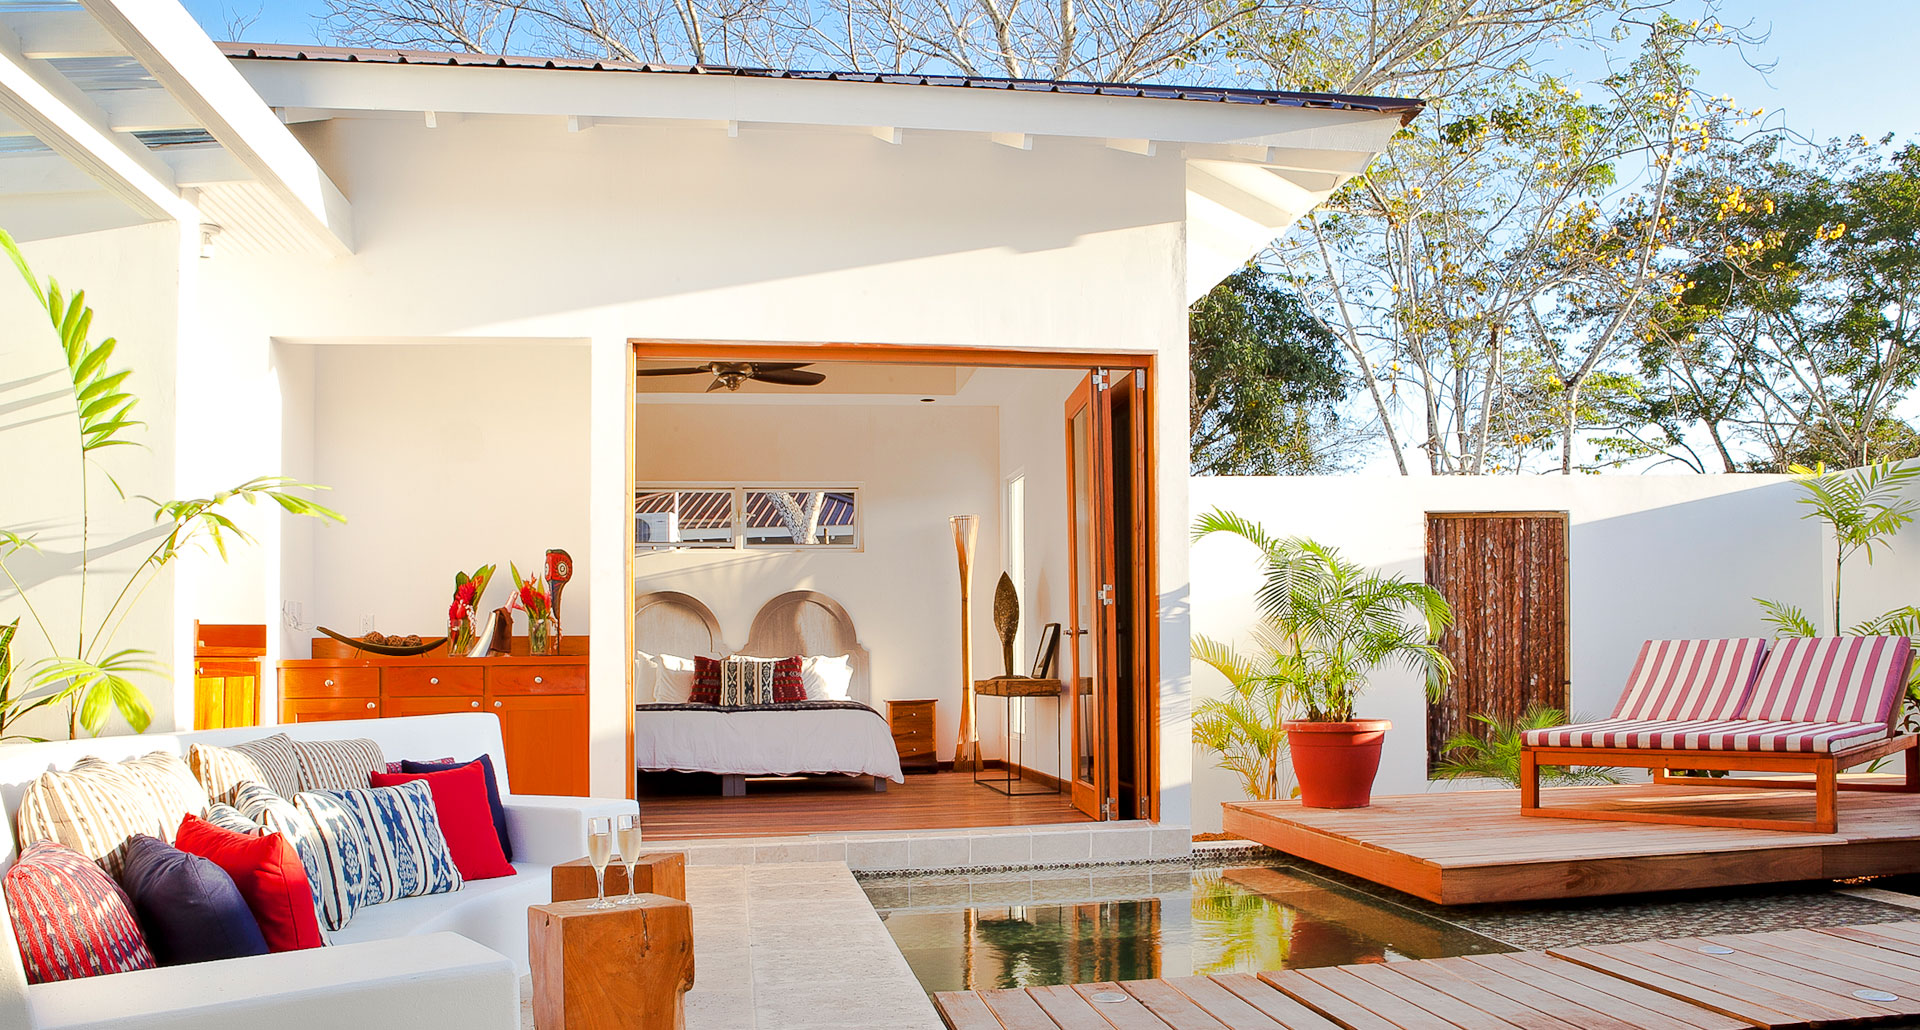 Ka'ana Resort - boutique hotel in San Ignacio